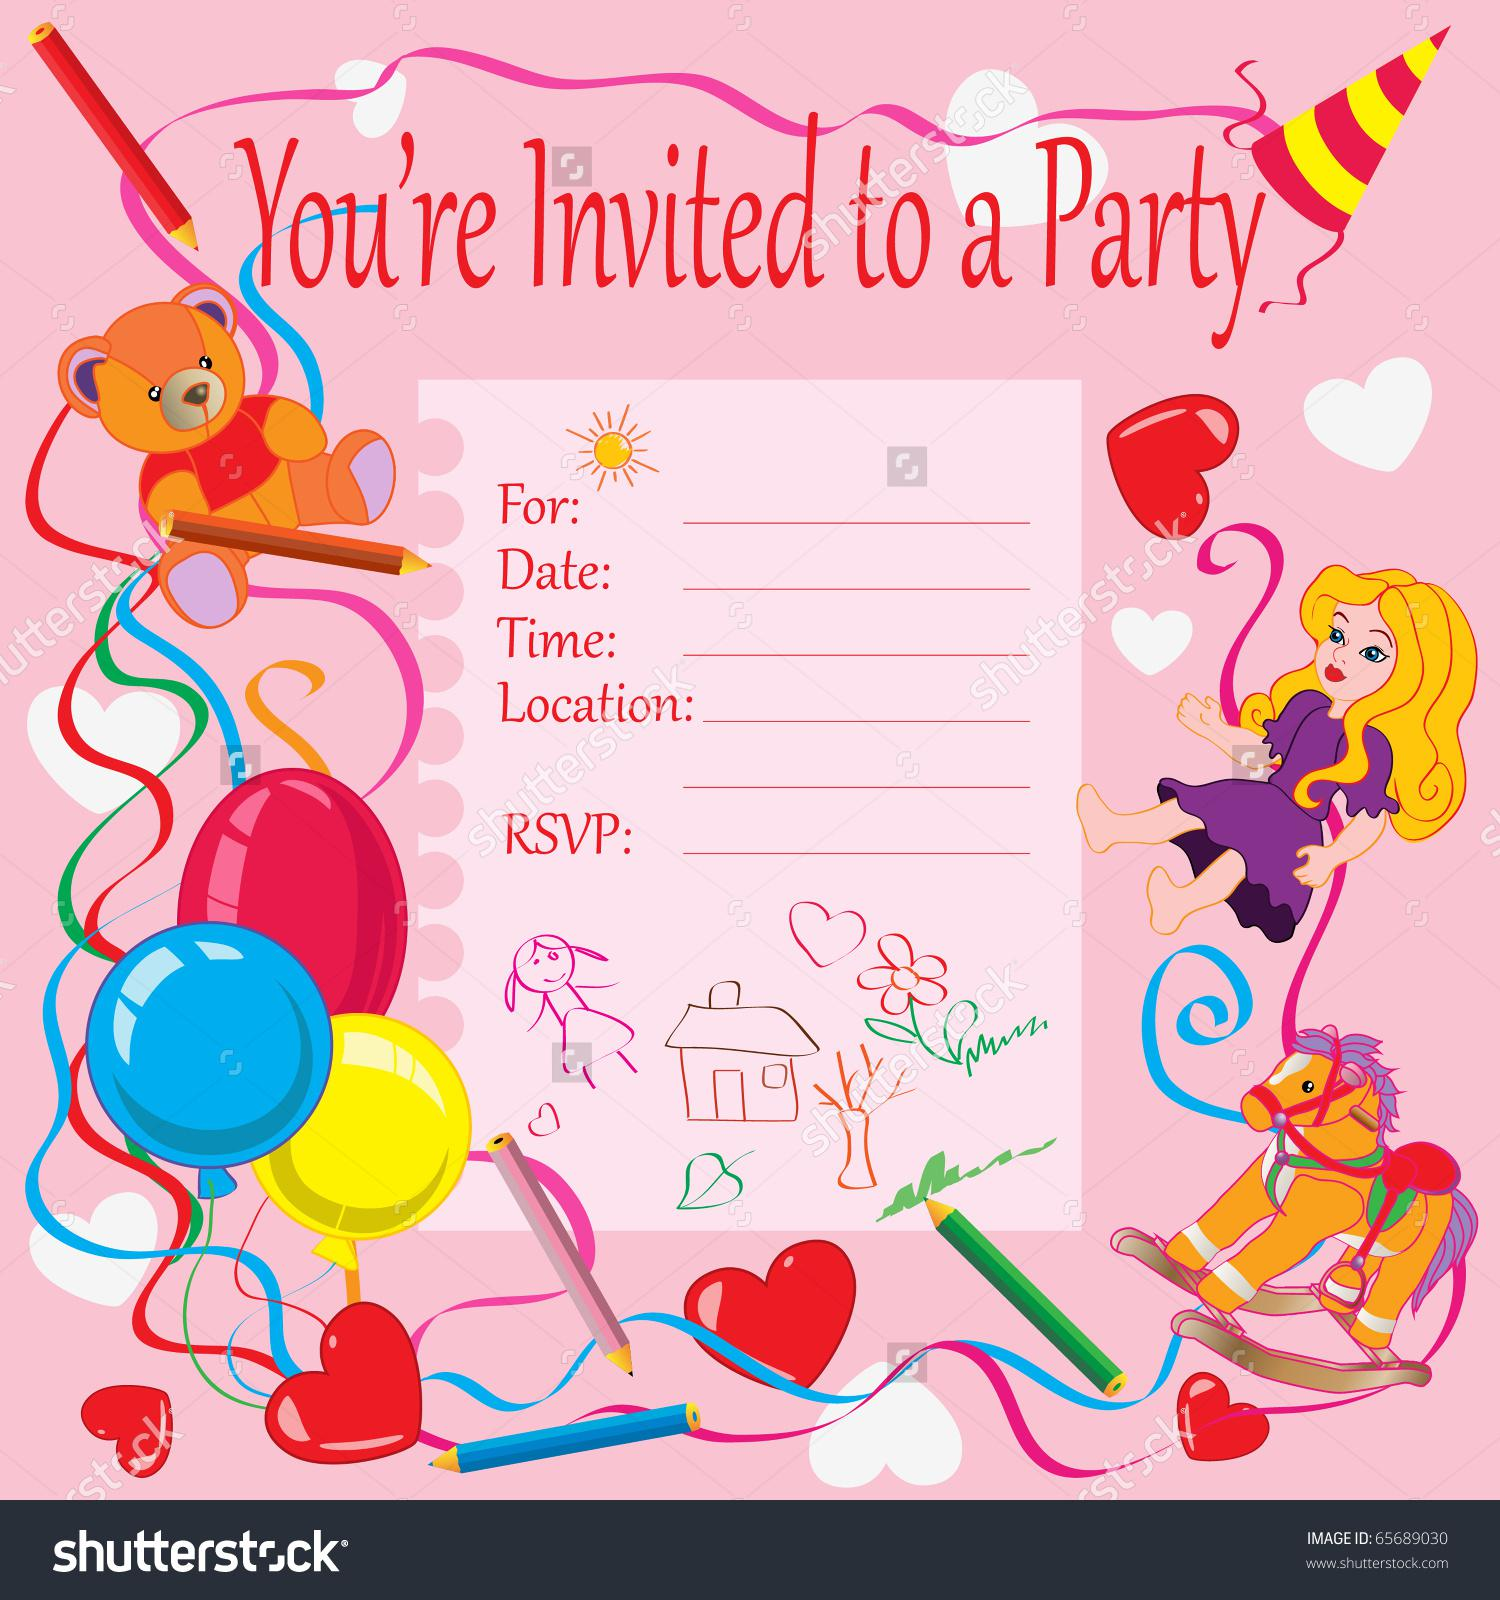 4 Step Make Your Own Birthday Invitations Free Sample Printable – Free Kids Party Invitations to Print